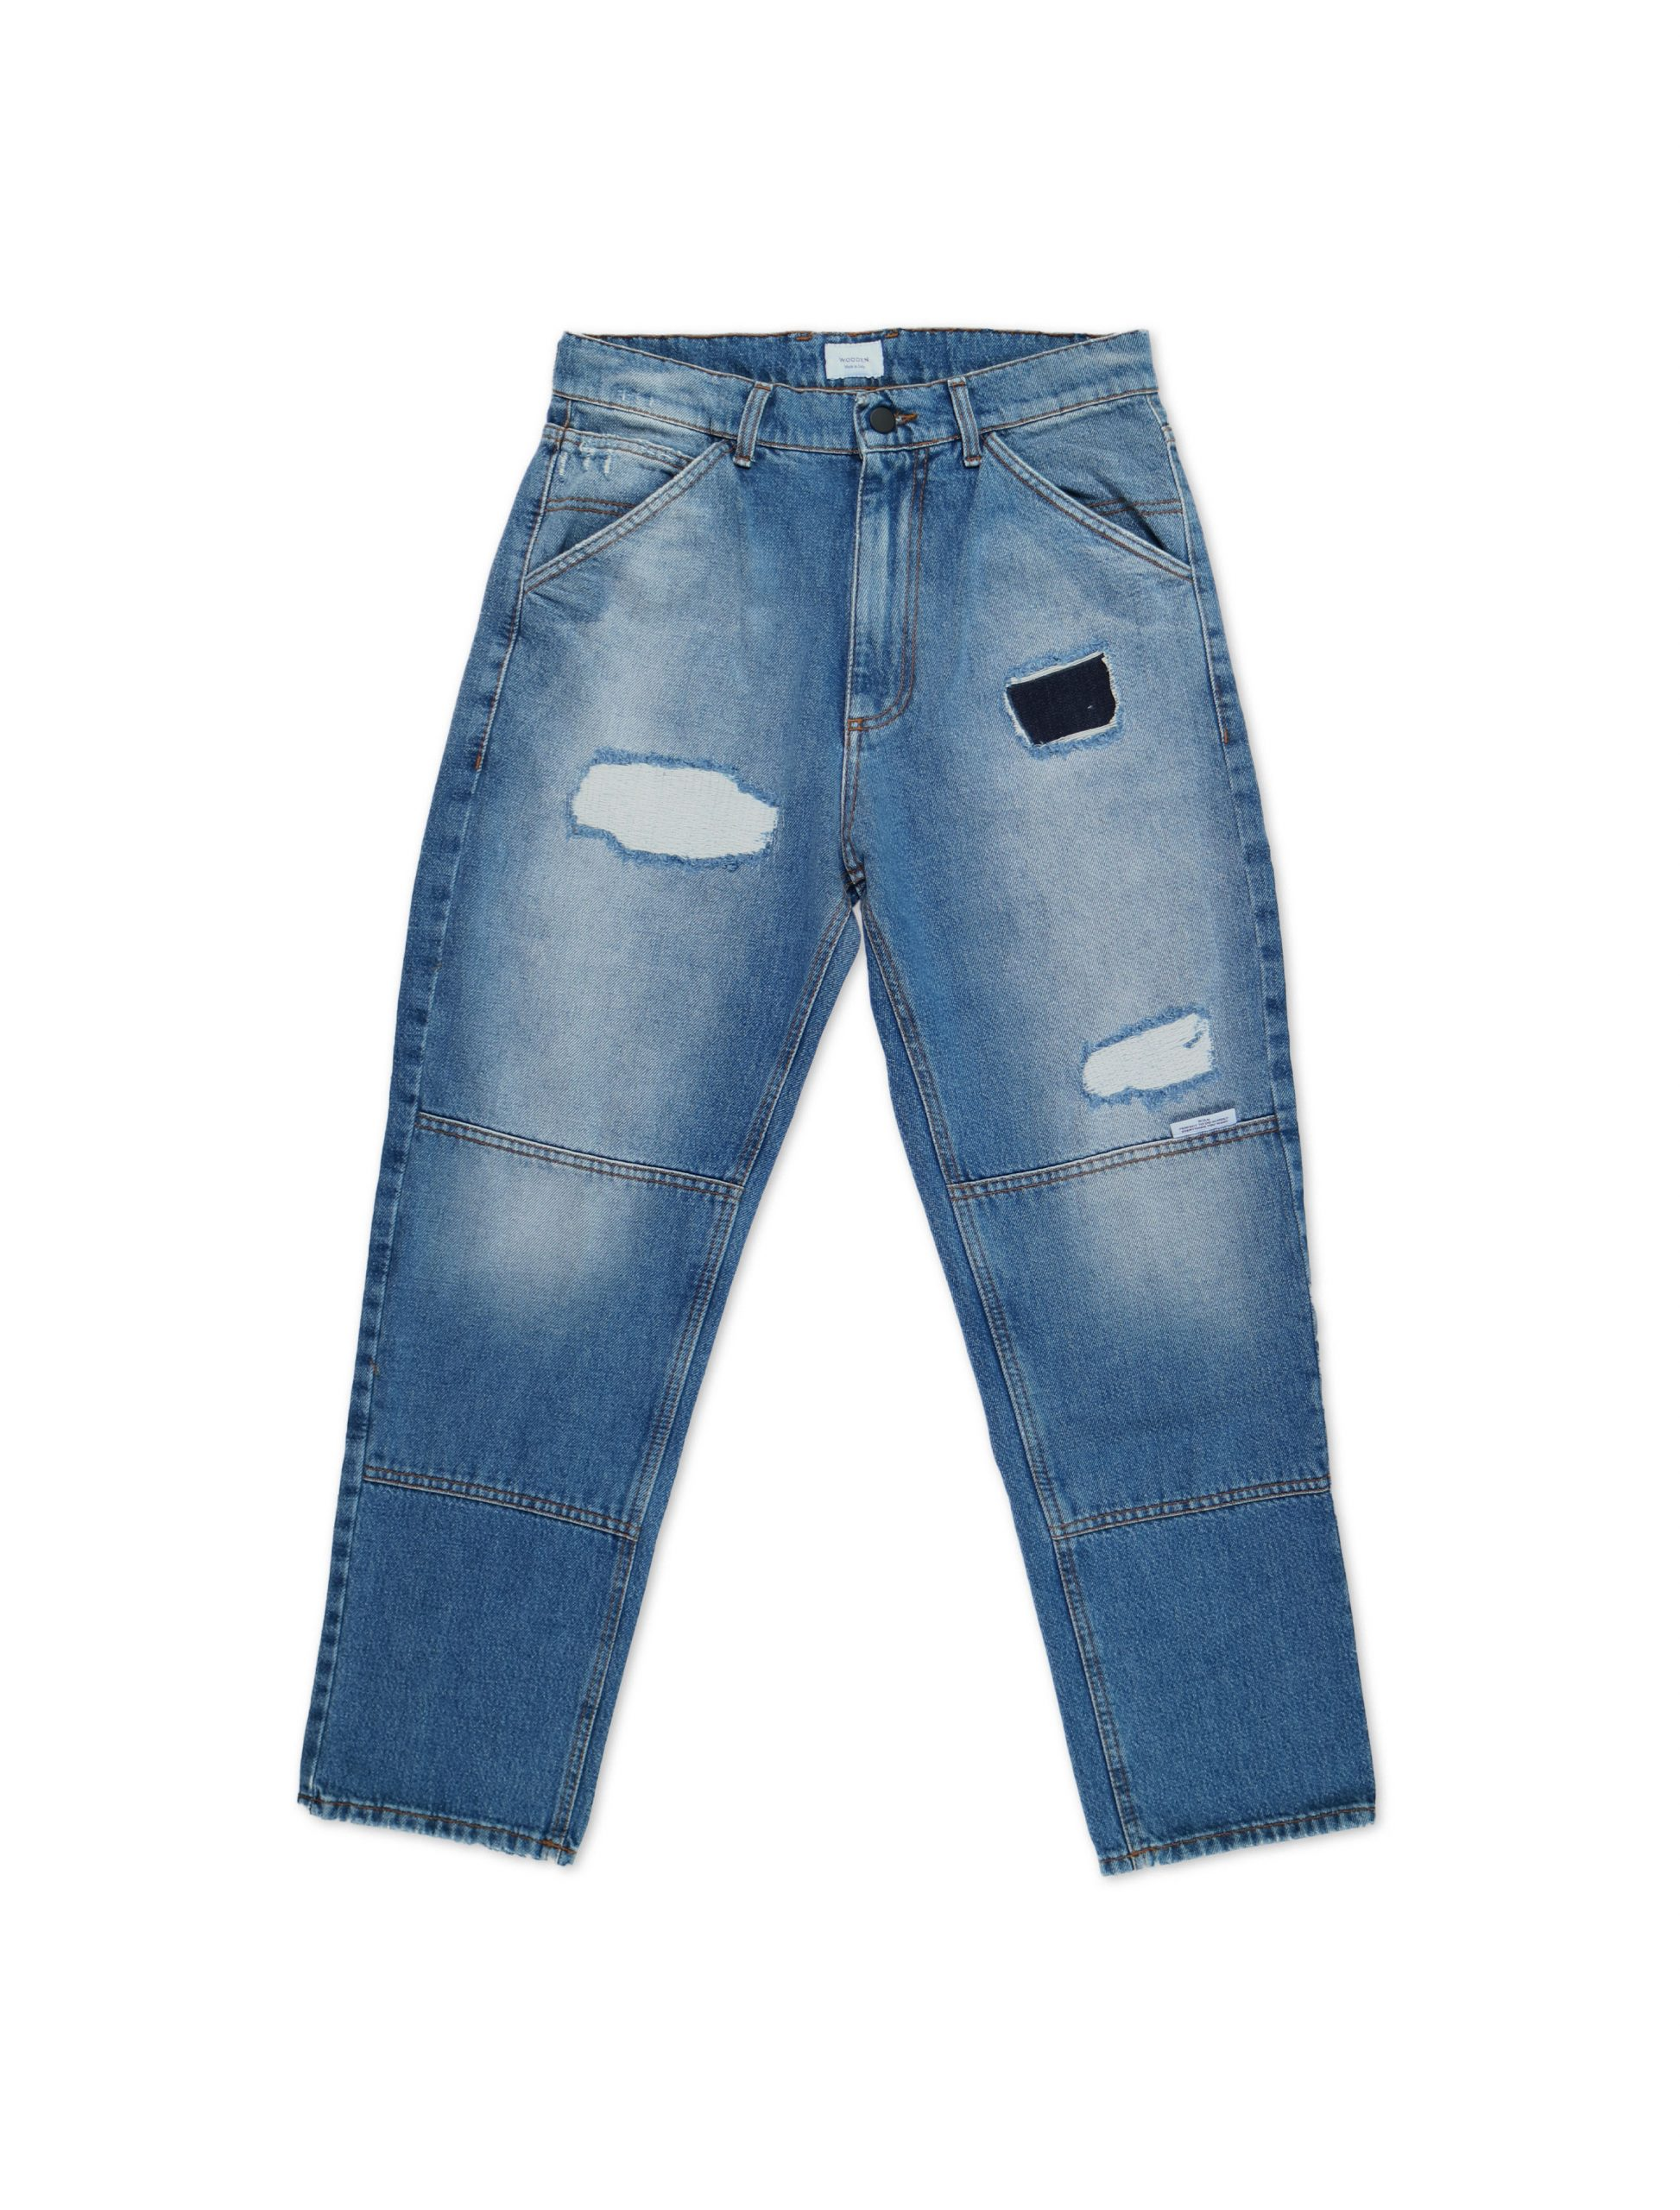 Jeans 1990 Patched | Wooden Store